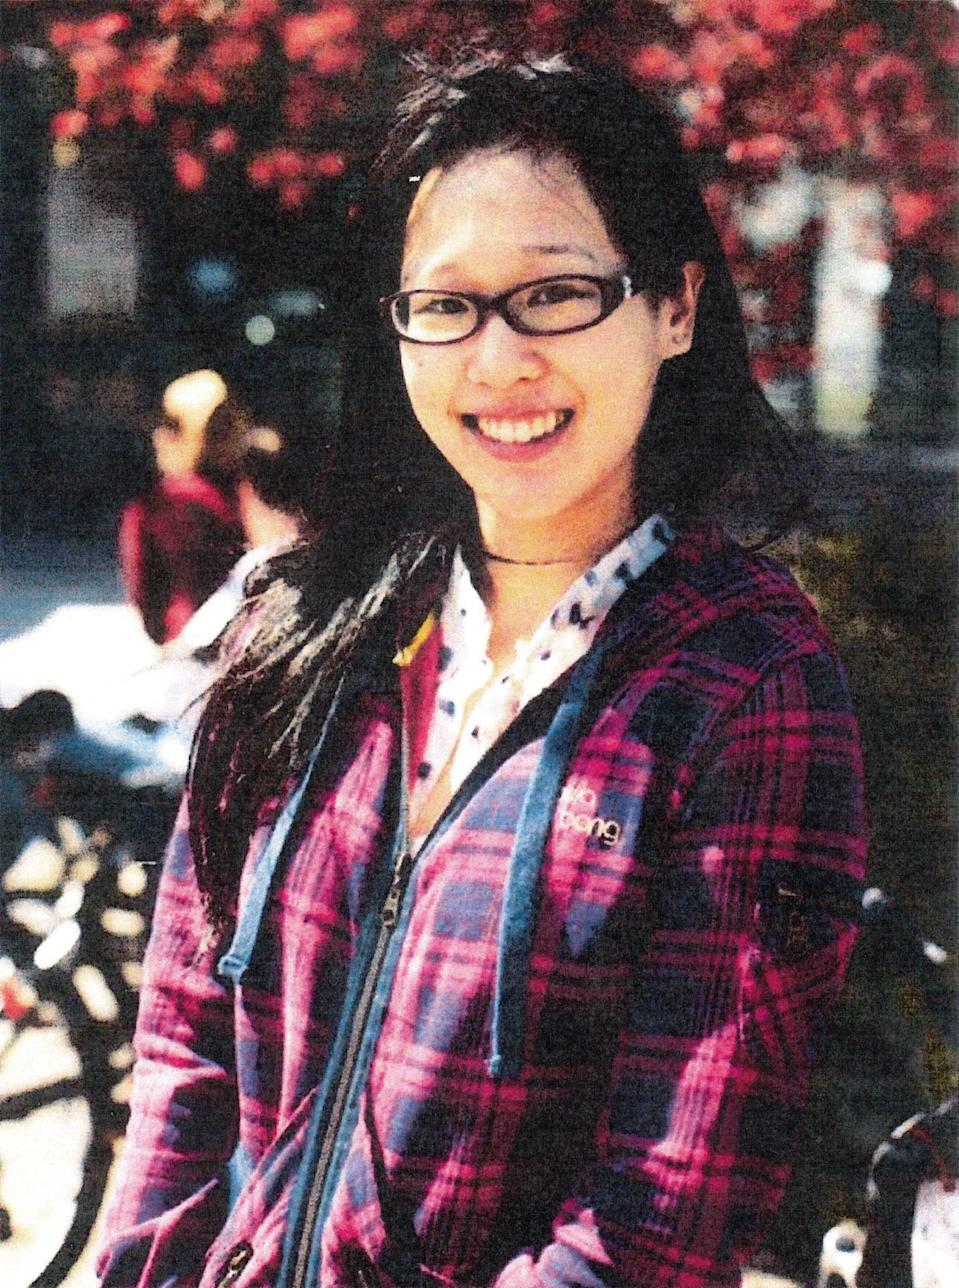 FILE - This file photo released by the Los Angeles Police Department shows Elisa Lam of Vancouver, B.C. Los Angeles police say a body has been found on the roof of the Cecil Hotel where Lam, a Canadian tourist, was last seen last month. (AP Photo/Los Angeles Police Department, File)